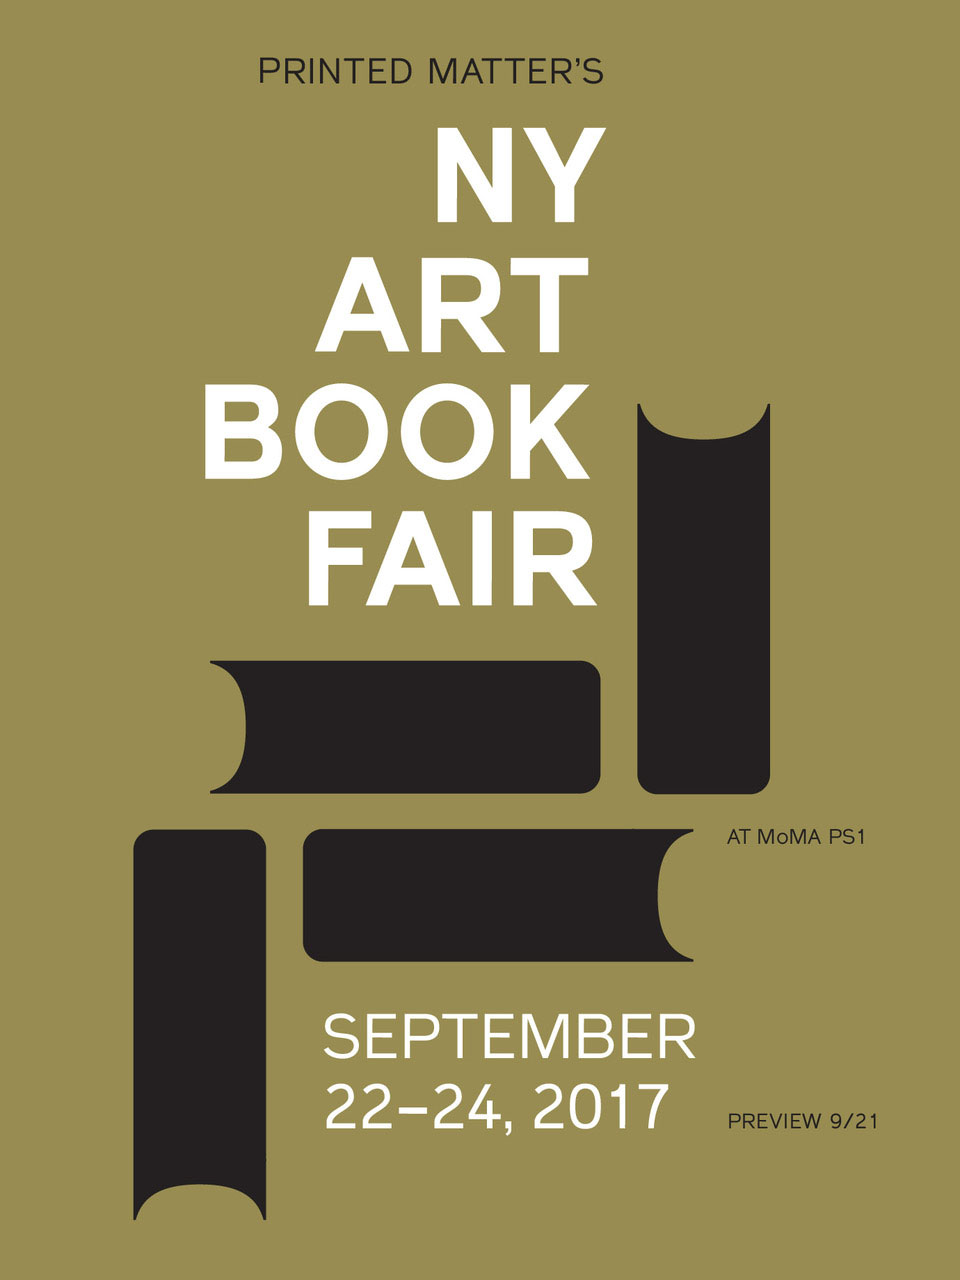 NY Art Book Fair 2017 logo